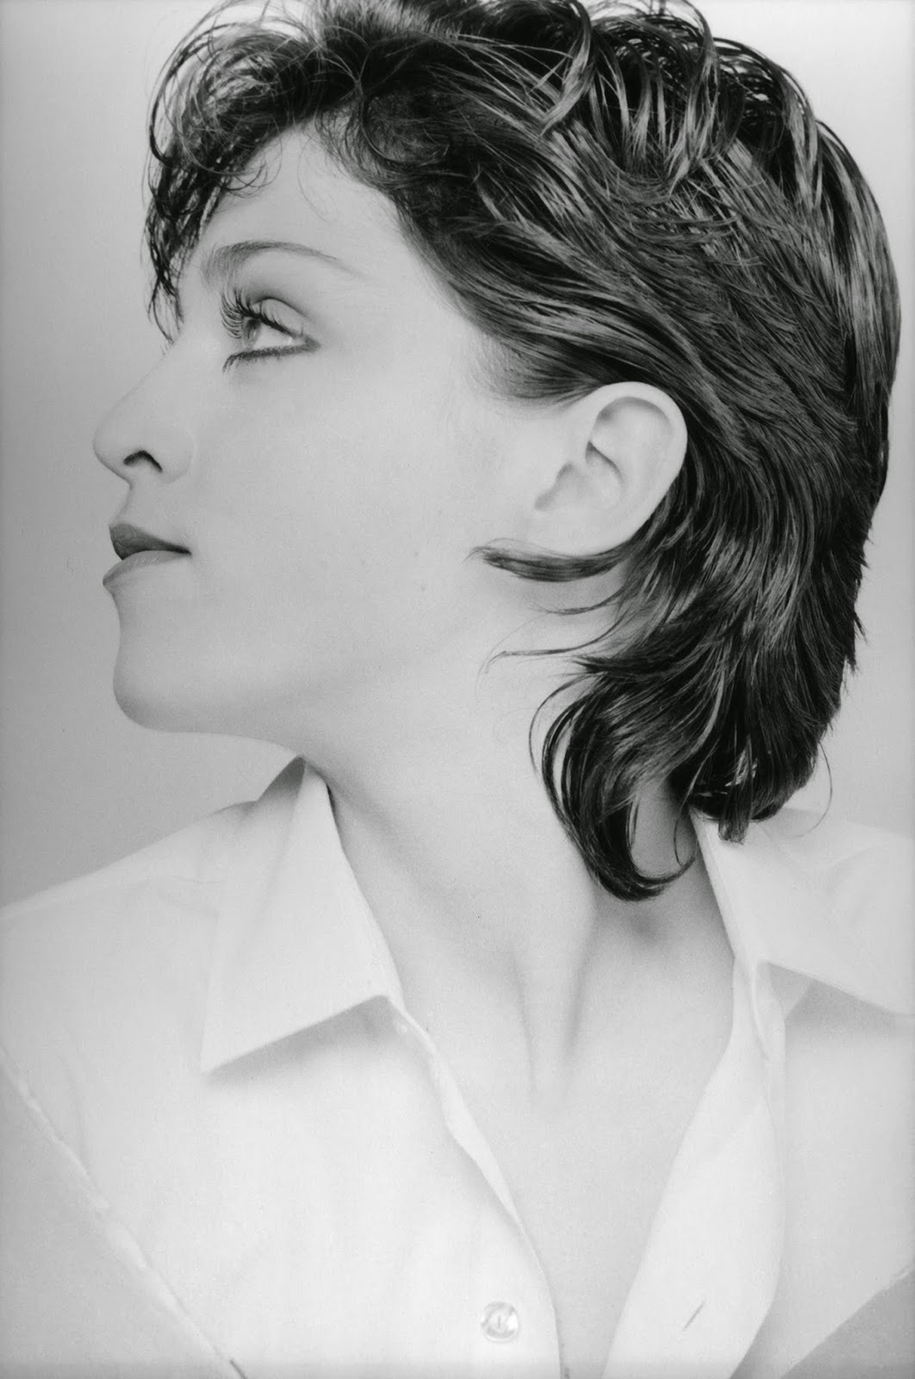 madonna-photoshoot-before-she-was-famous-new-york-6